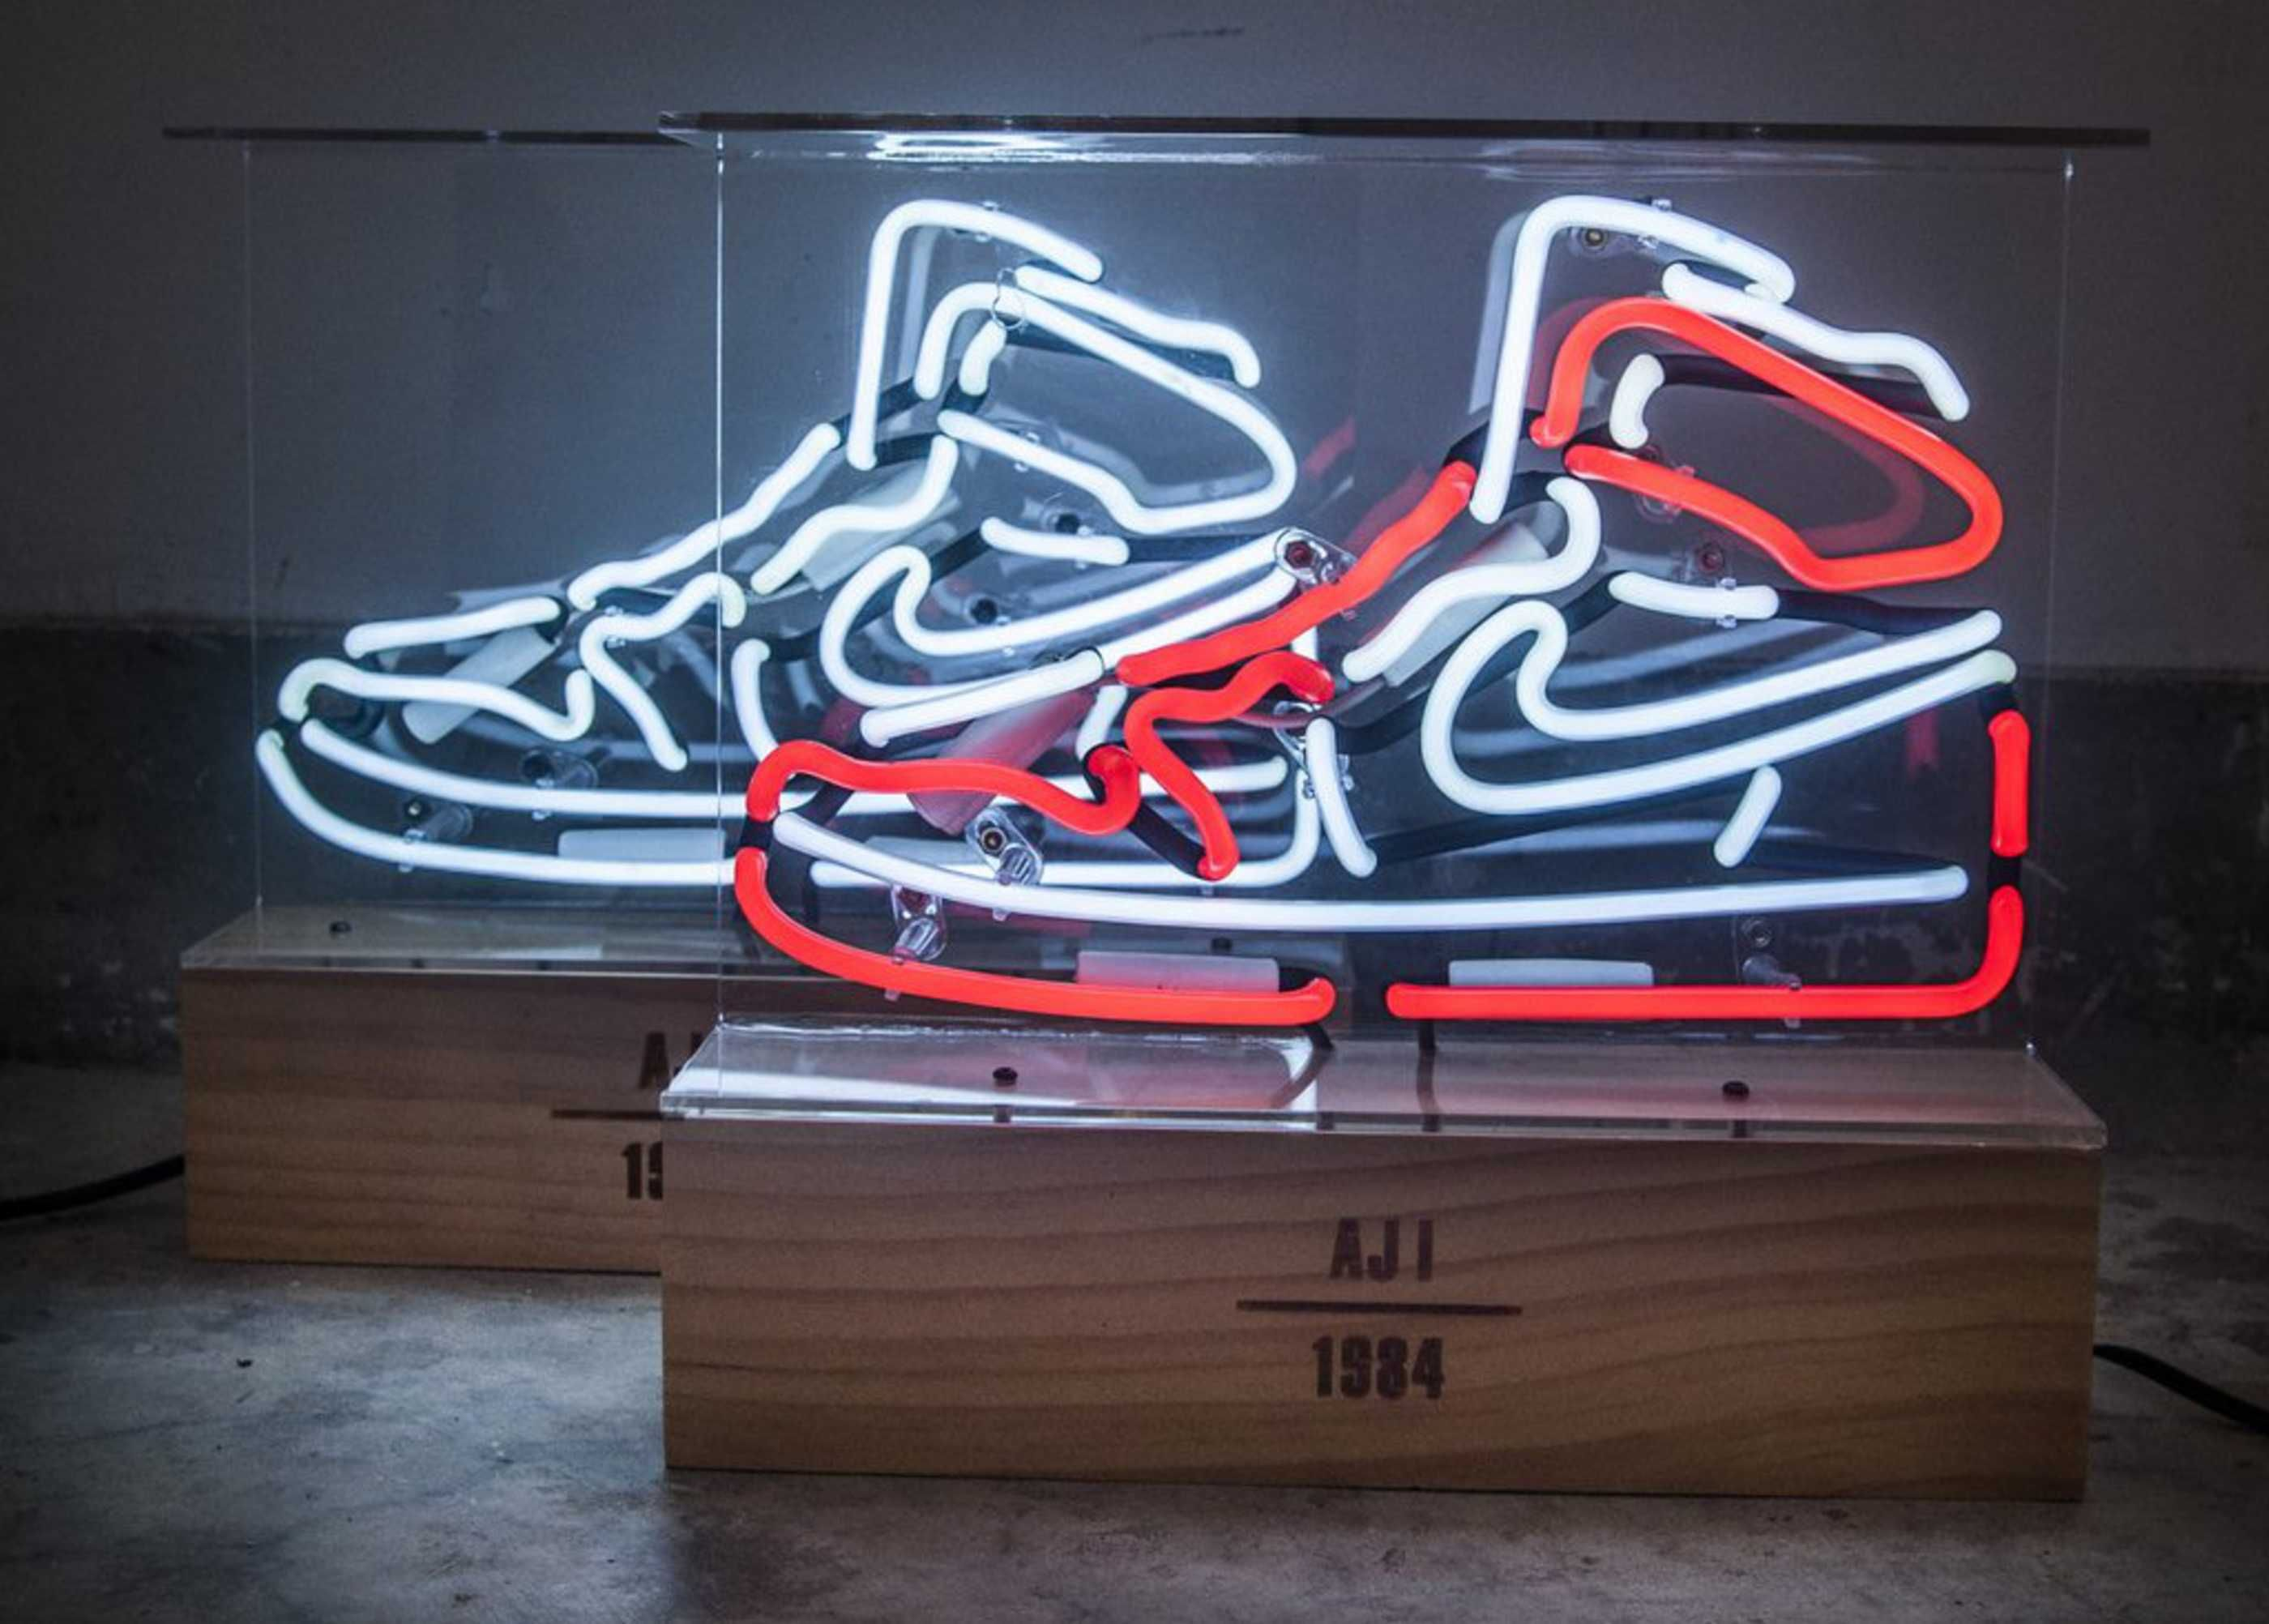 Air Neon 1 Tribute The These Jordan Lights Pay To dtCQxshr